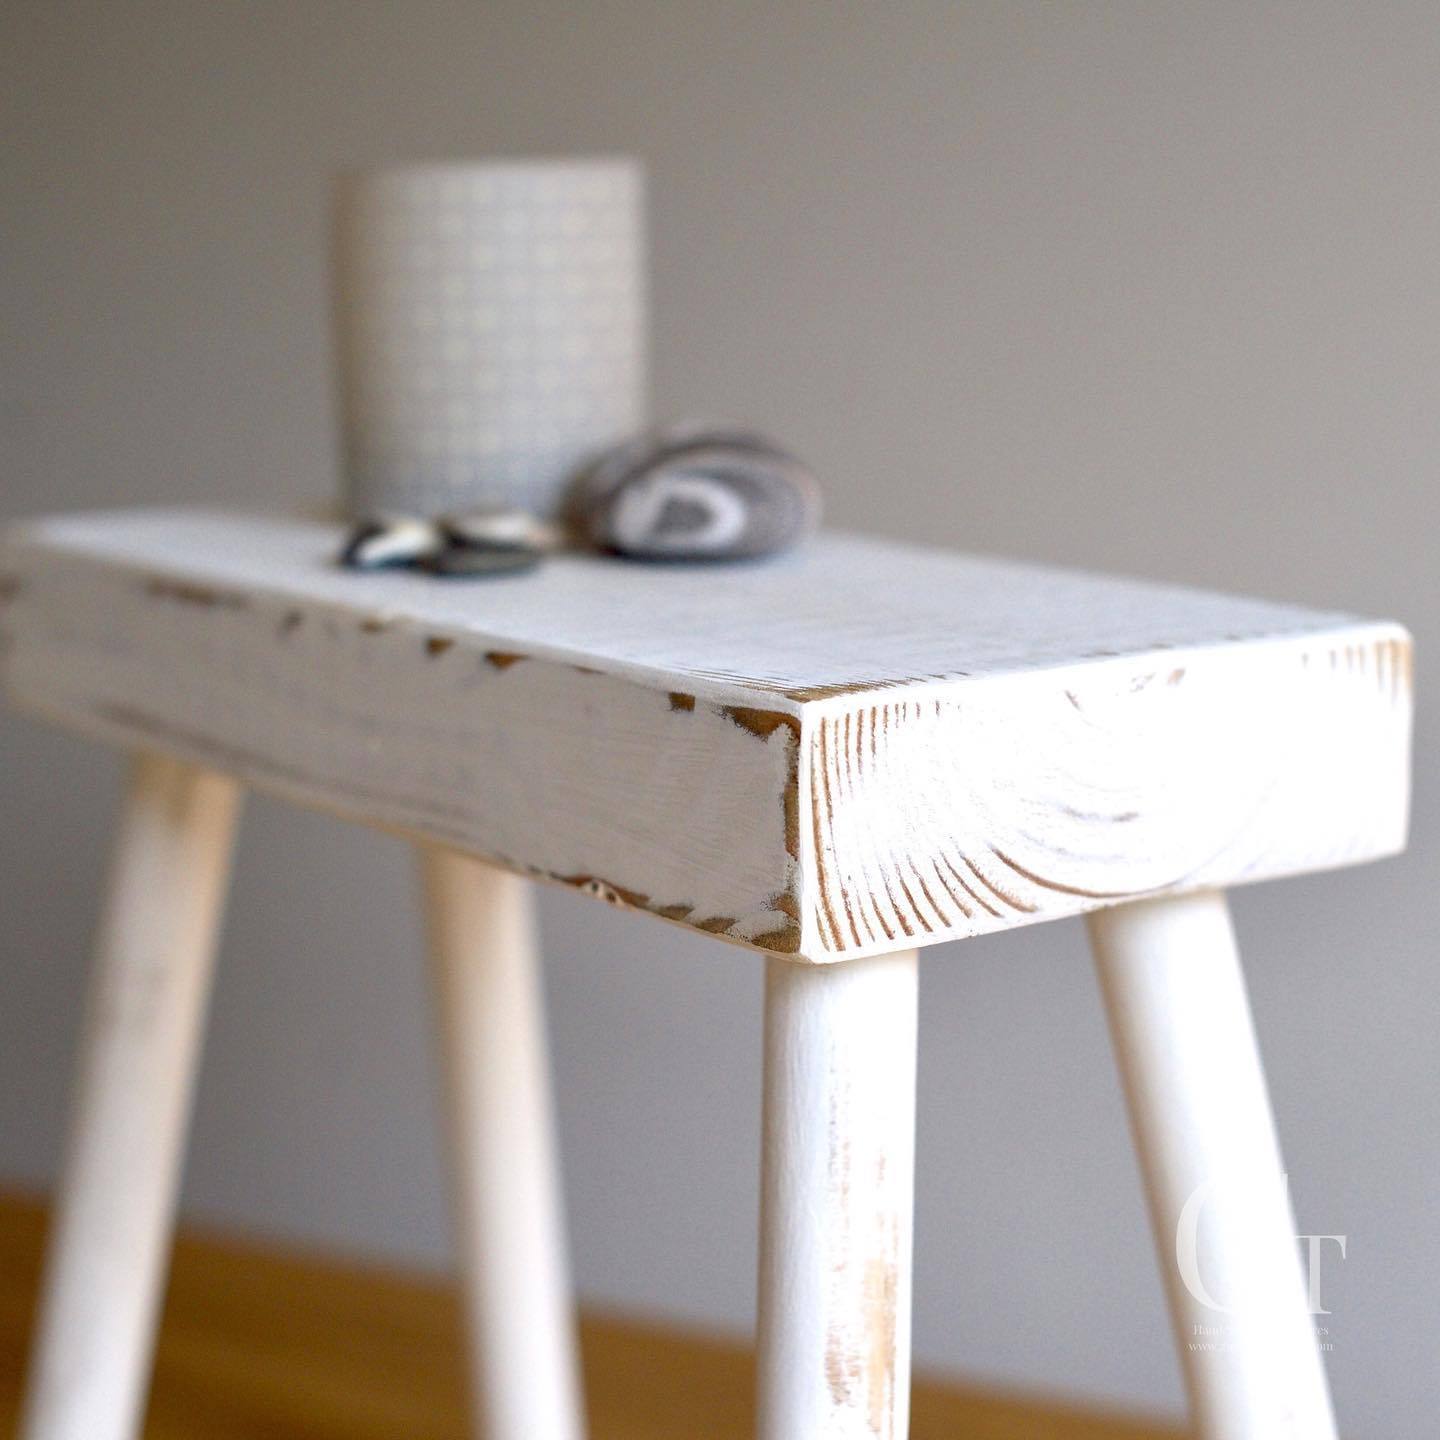 We've just re stocked our white milking stools! ️  @amymurrell ...#stool #scandi #rustic #modern #countrystyle #handcrafted #homedecor #livingroomdecor #woodworking #simpleliving #style